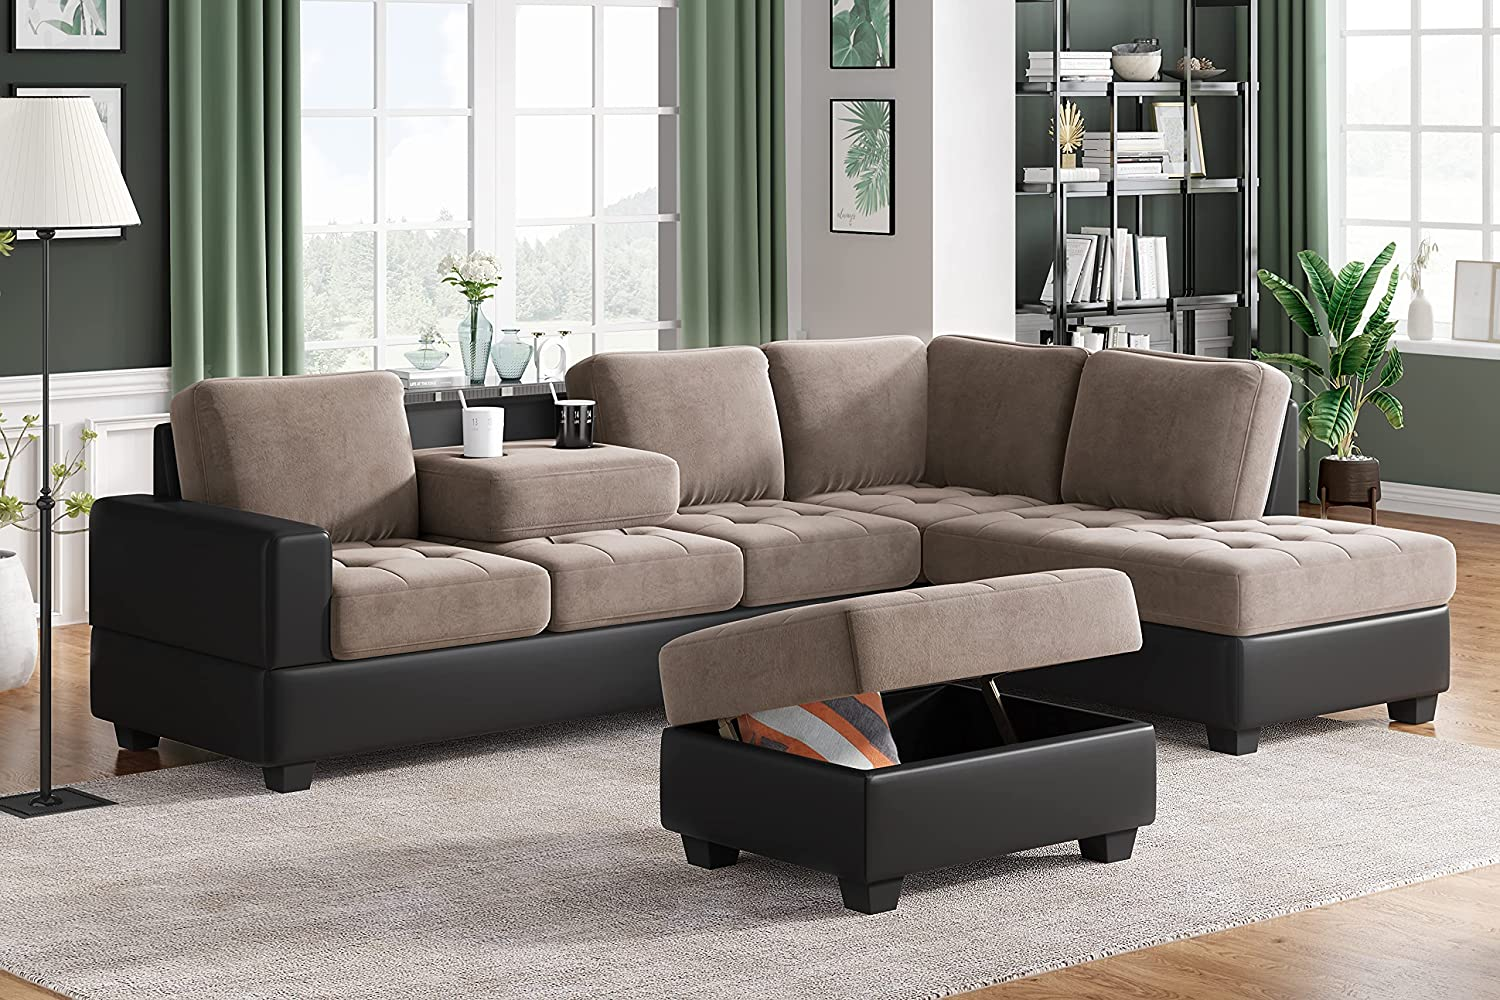 STARTOGOO L-Shaped Couch 3 Piece Convertible Sectional Sofa with Reversible Chaise Lounge Storage Ottoman Set and 2 Cup Holders for Living Room, Apartment (Brown)